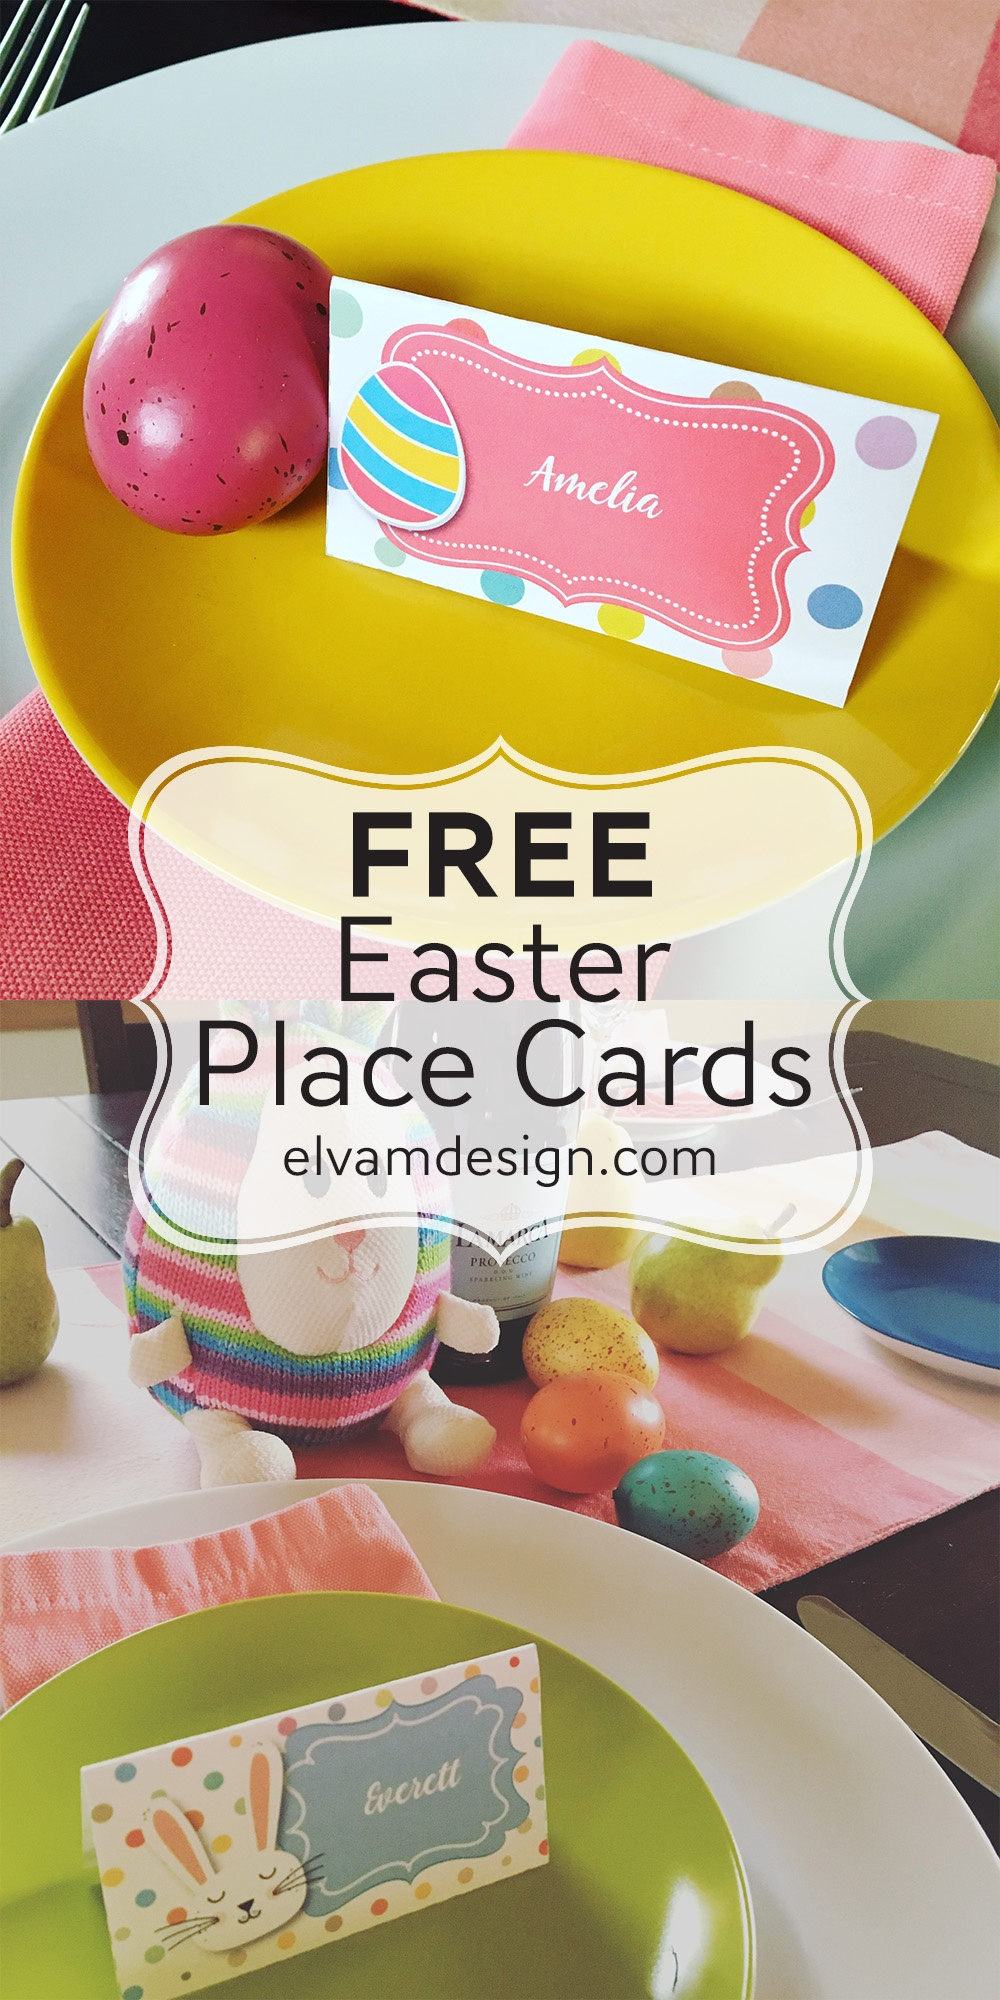 Free Easter Place Card (Or Food Tents) - Elva M Design Studio - Free Easter Place Cards Printable